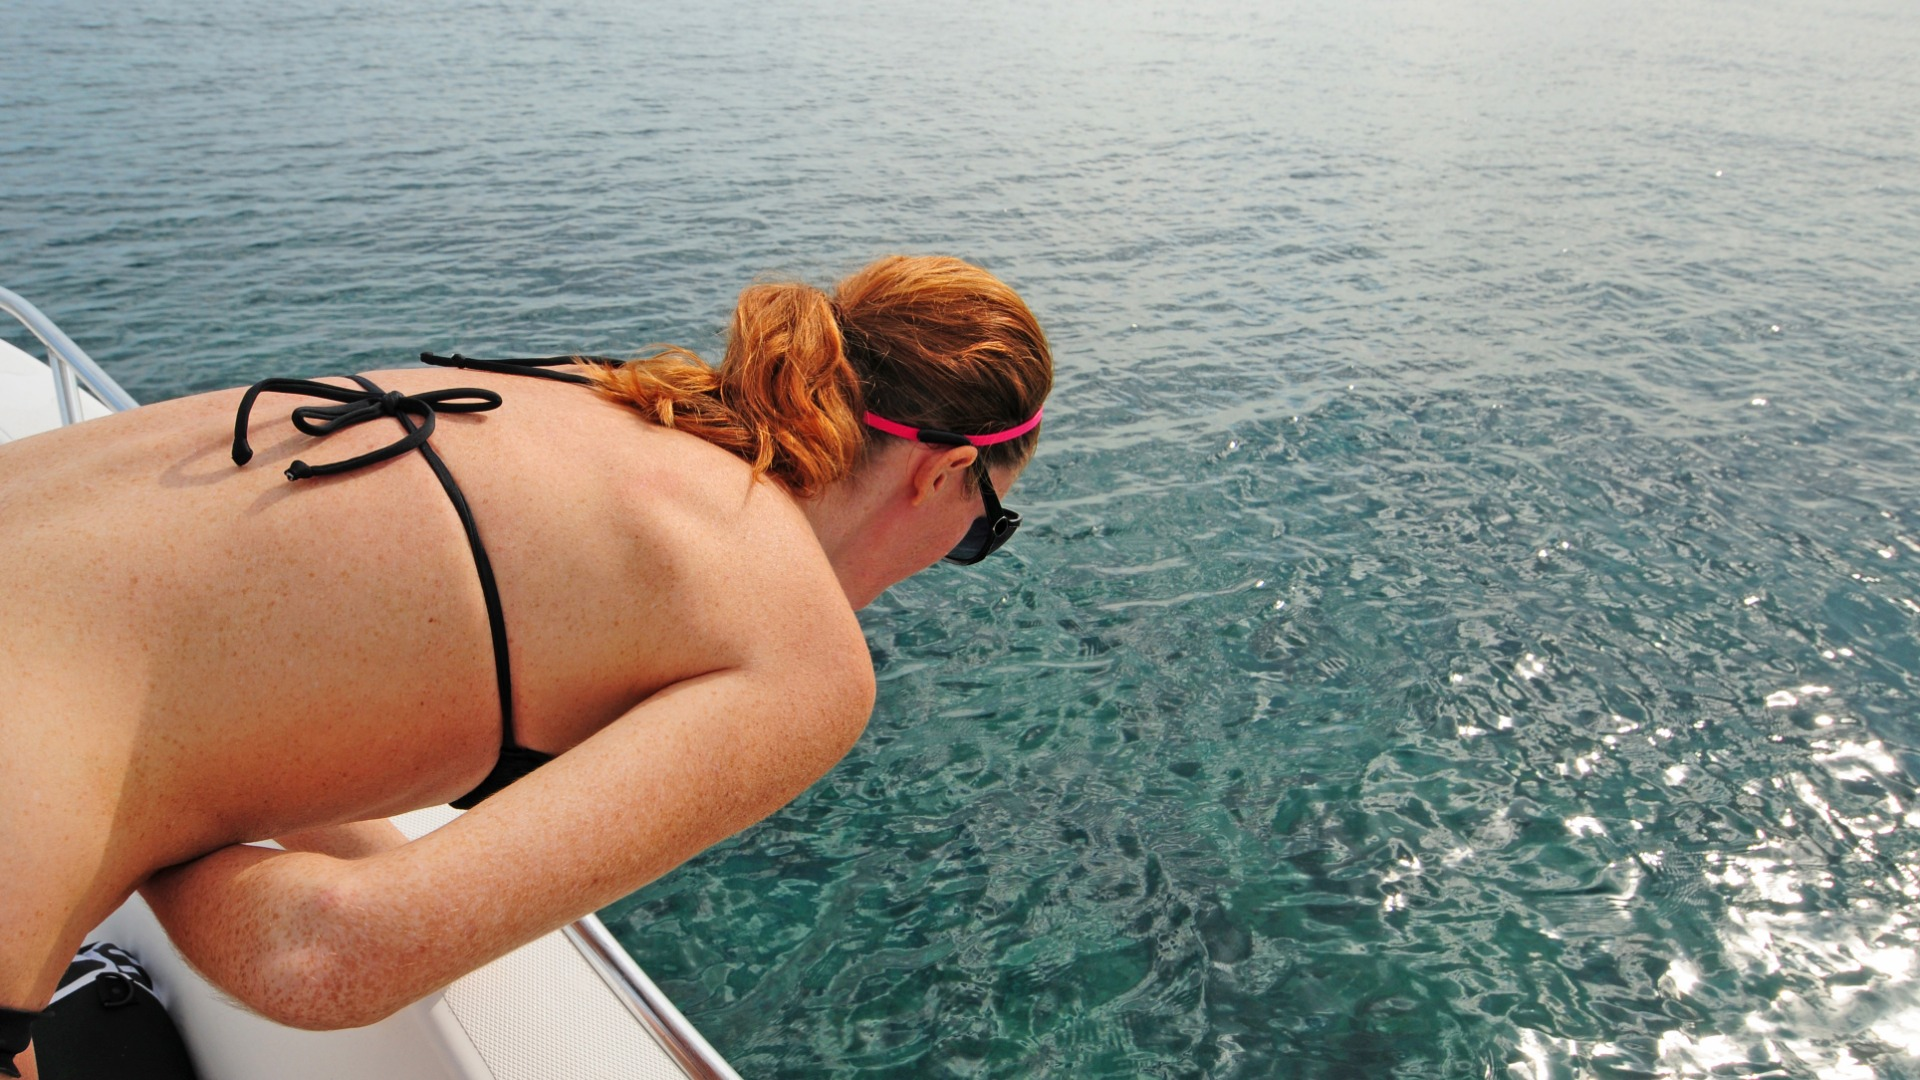 woman-getting-seasick-on-boat